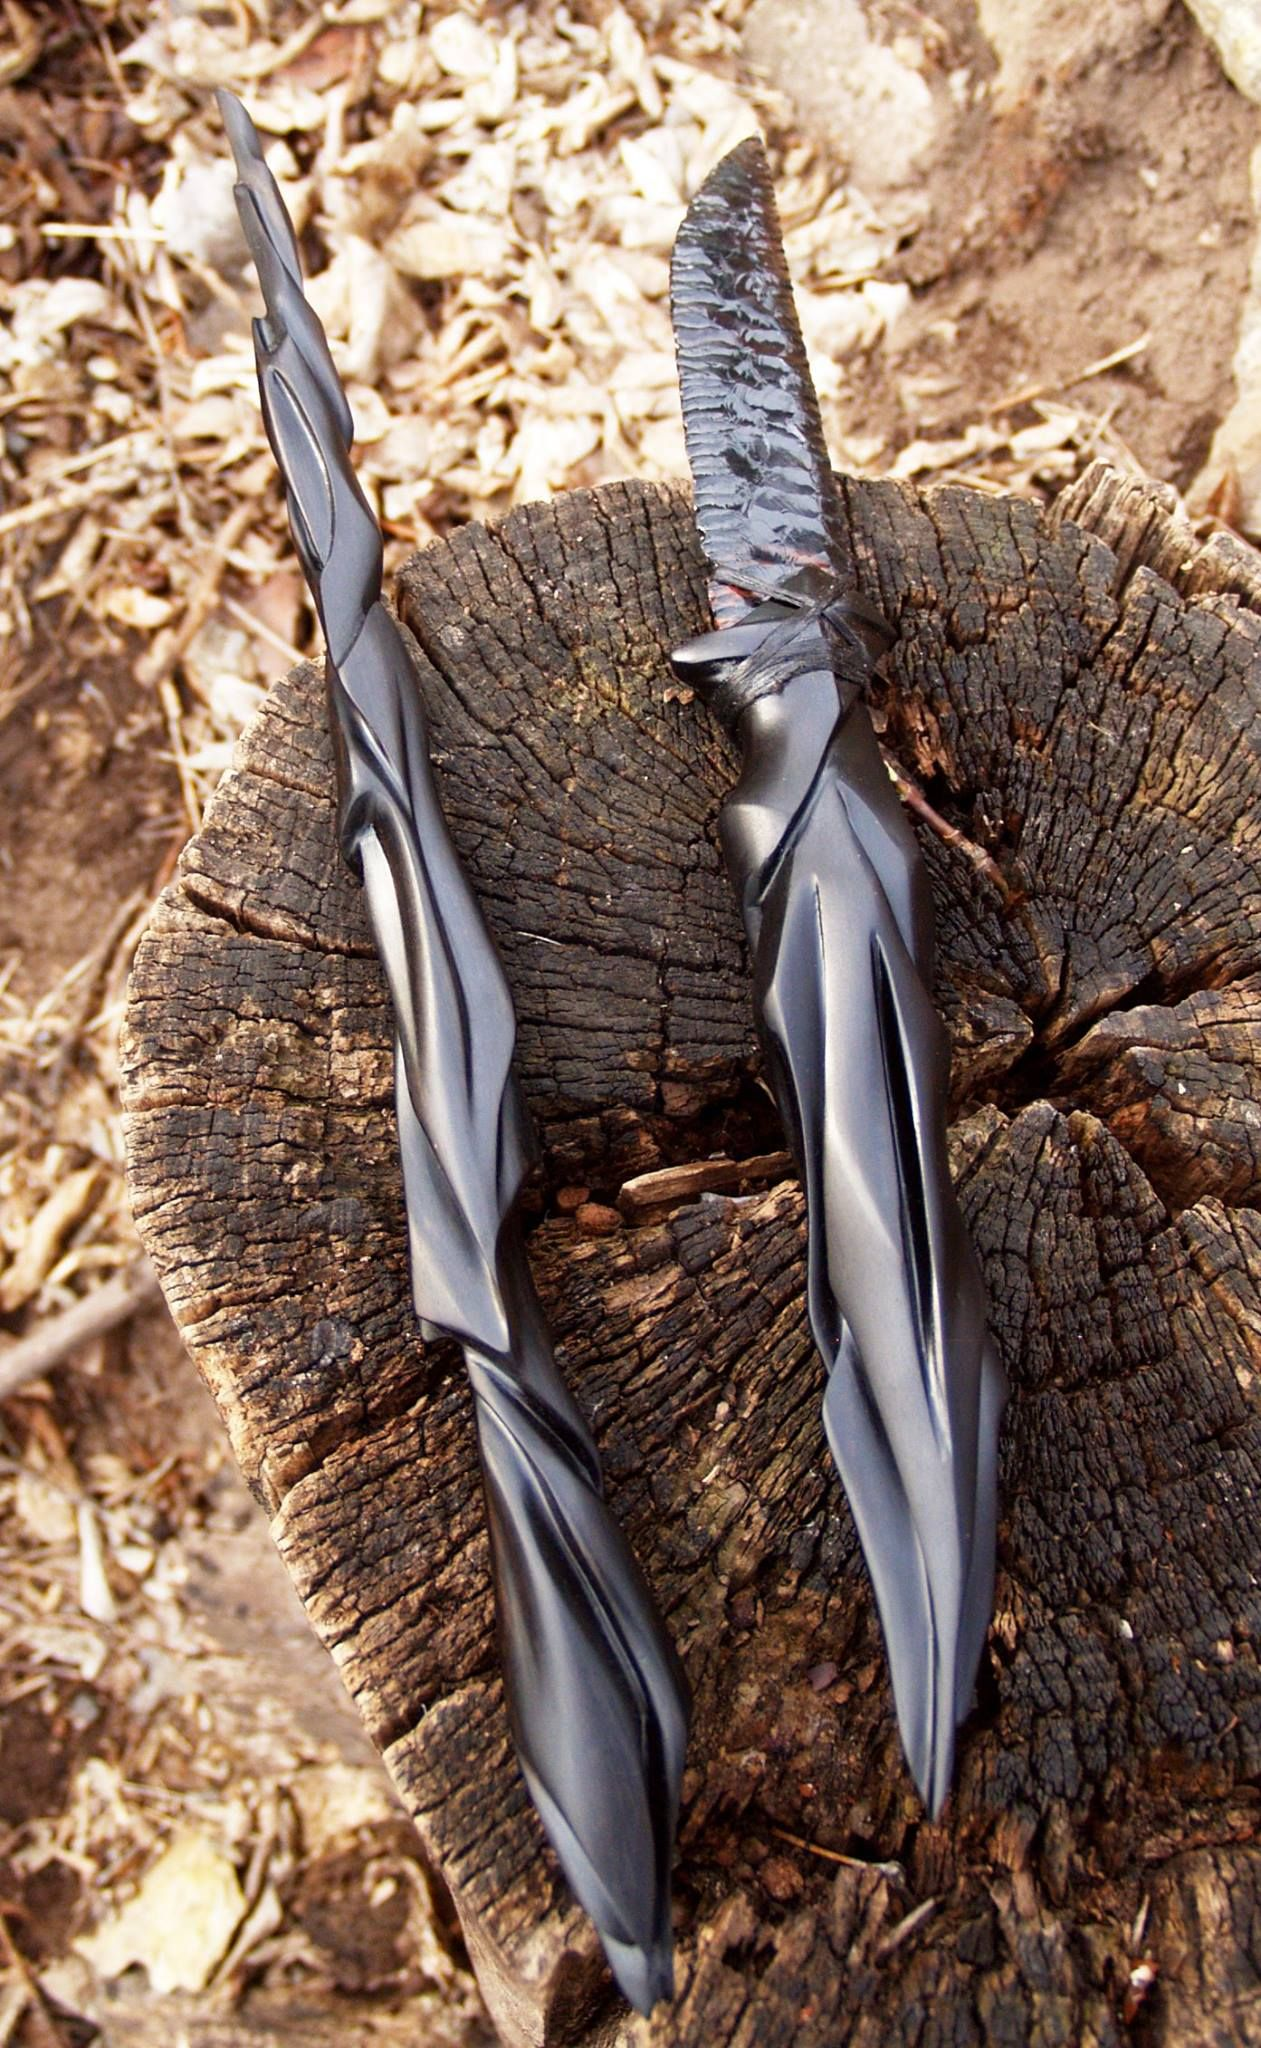 commission ebony wand knife strangeblood wood sculpture rh pinterest com